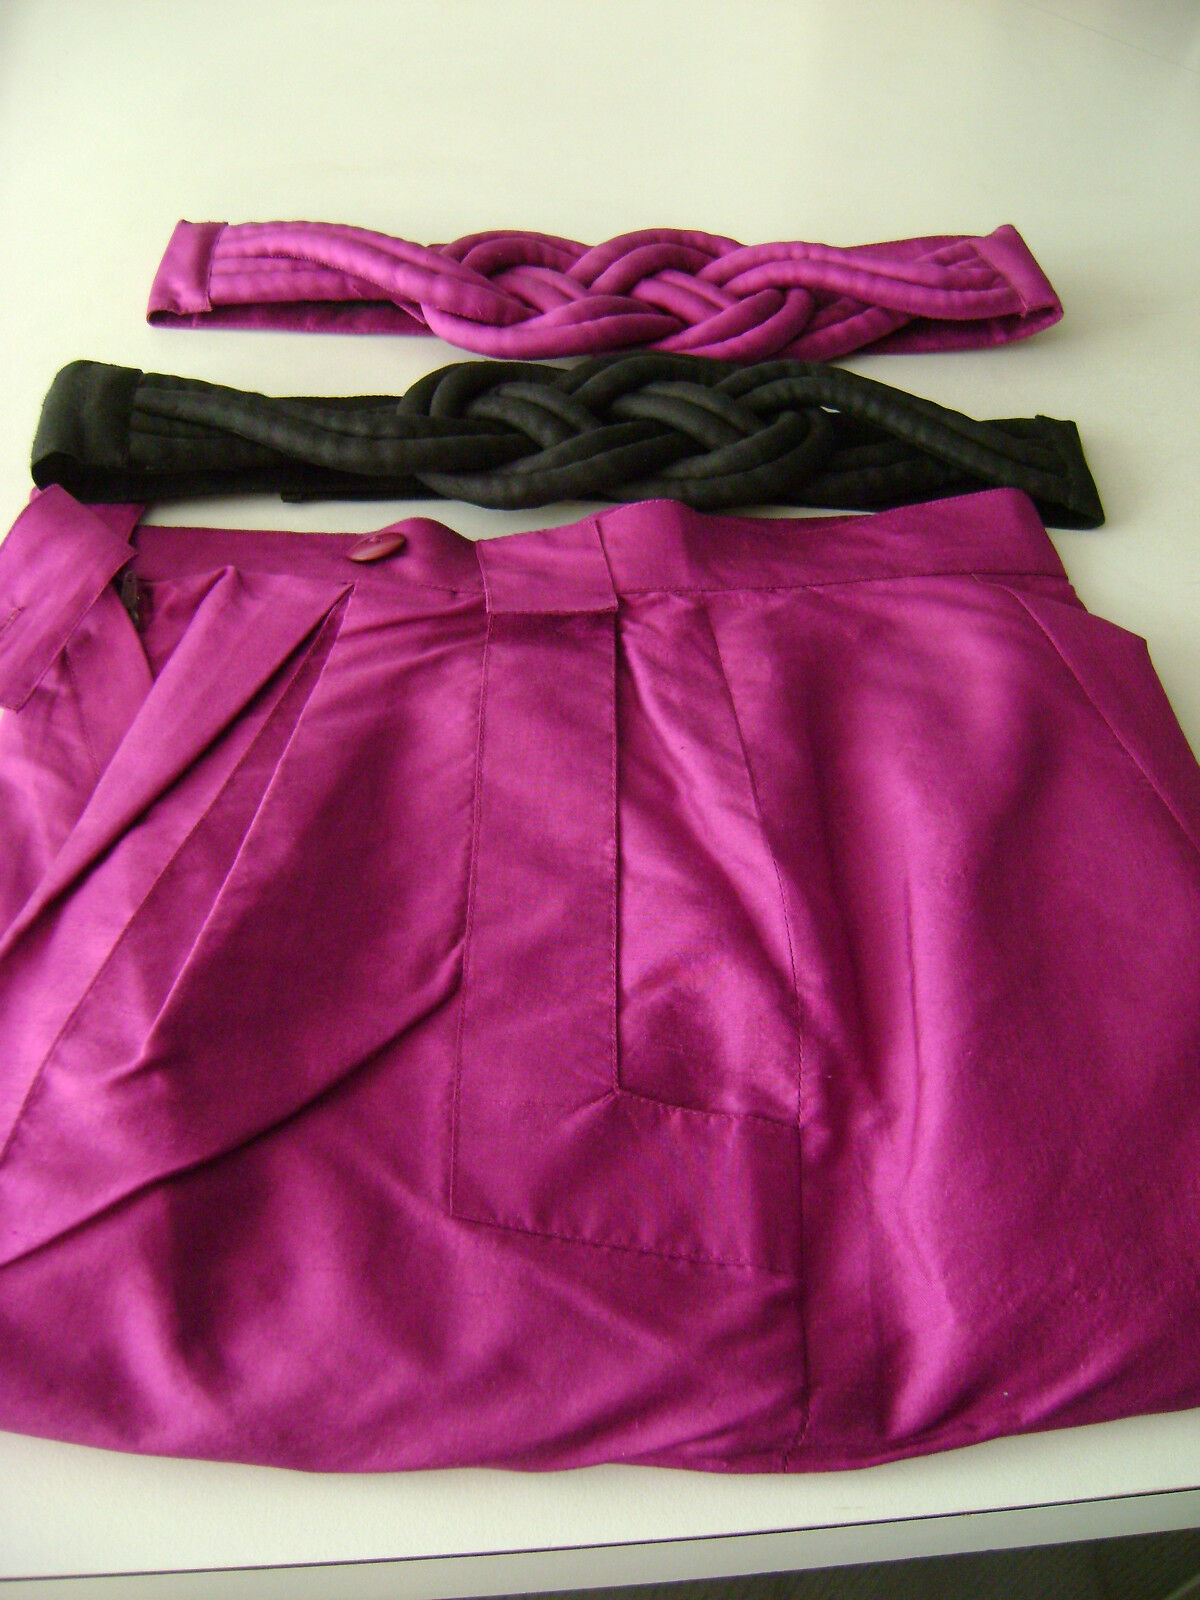 Lot of Jim Thompson 1990 Thai Silk Pants with 2-Belts - Size 8 ... 'RARE'